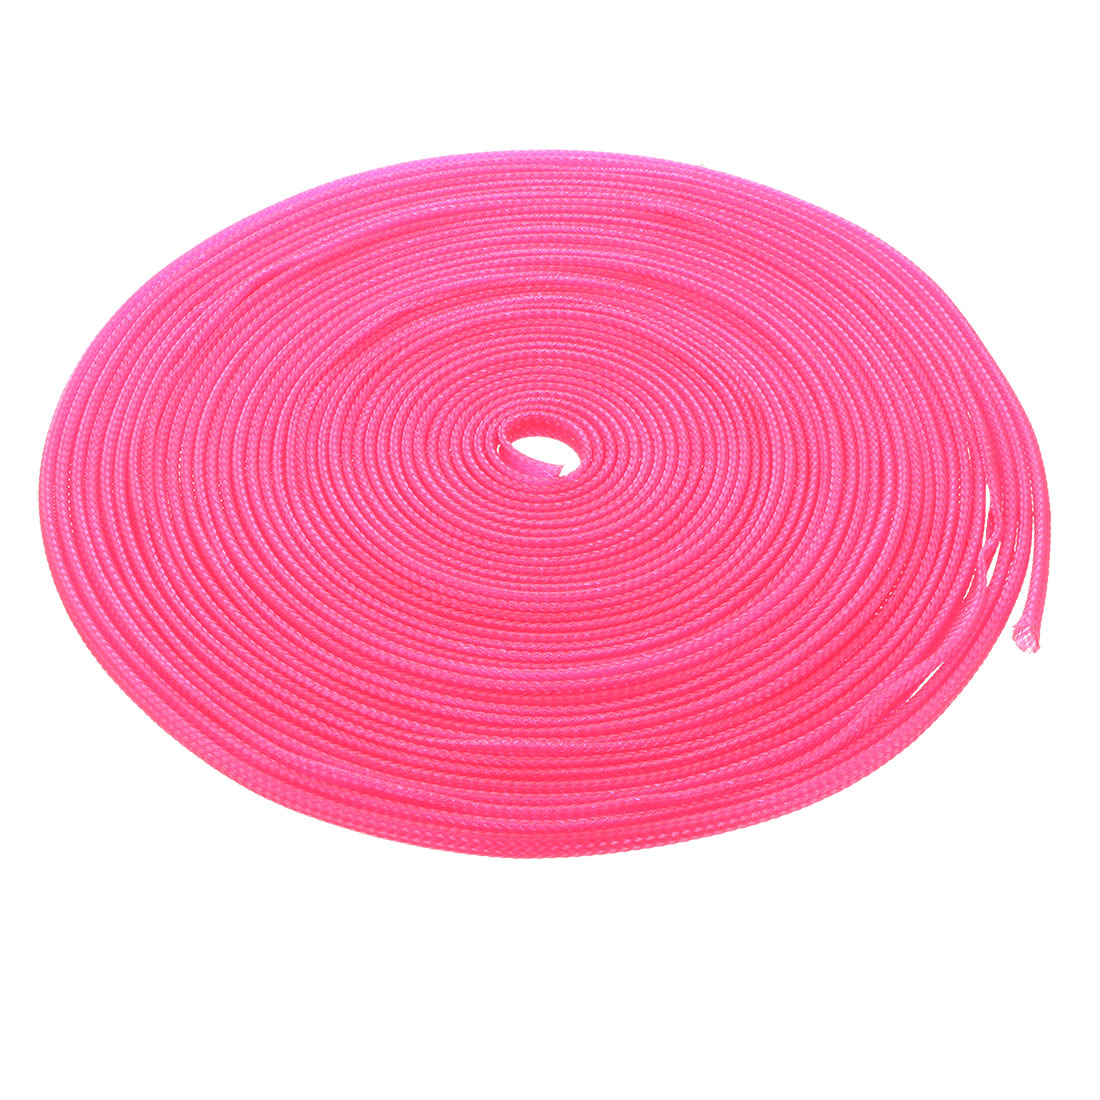 PET Braided Sleeving 32.8 Feet 10m Expandable Cable Wrap 4mm Diameter Wire Sheath Pink